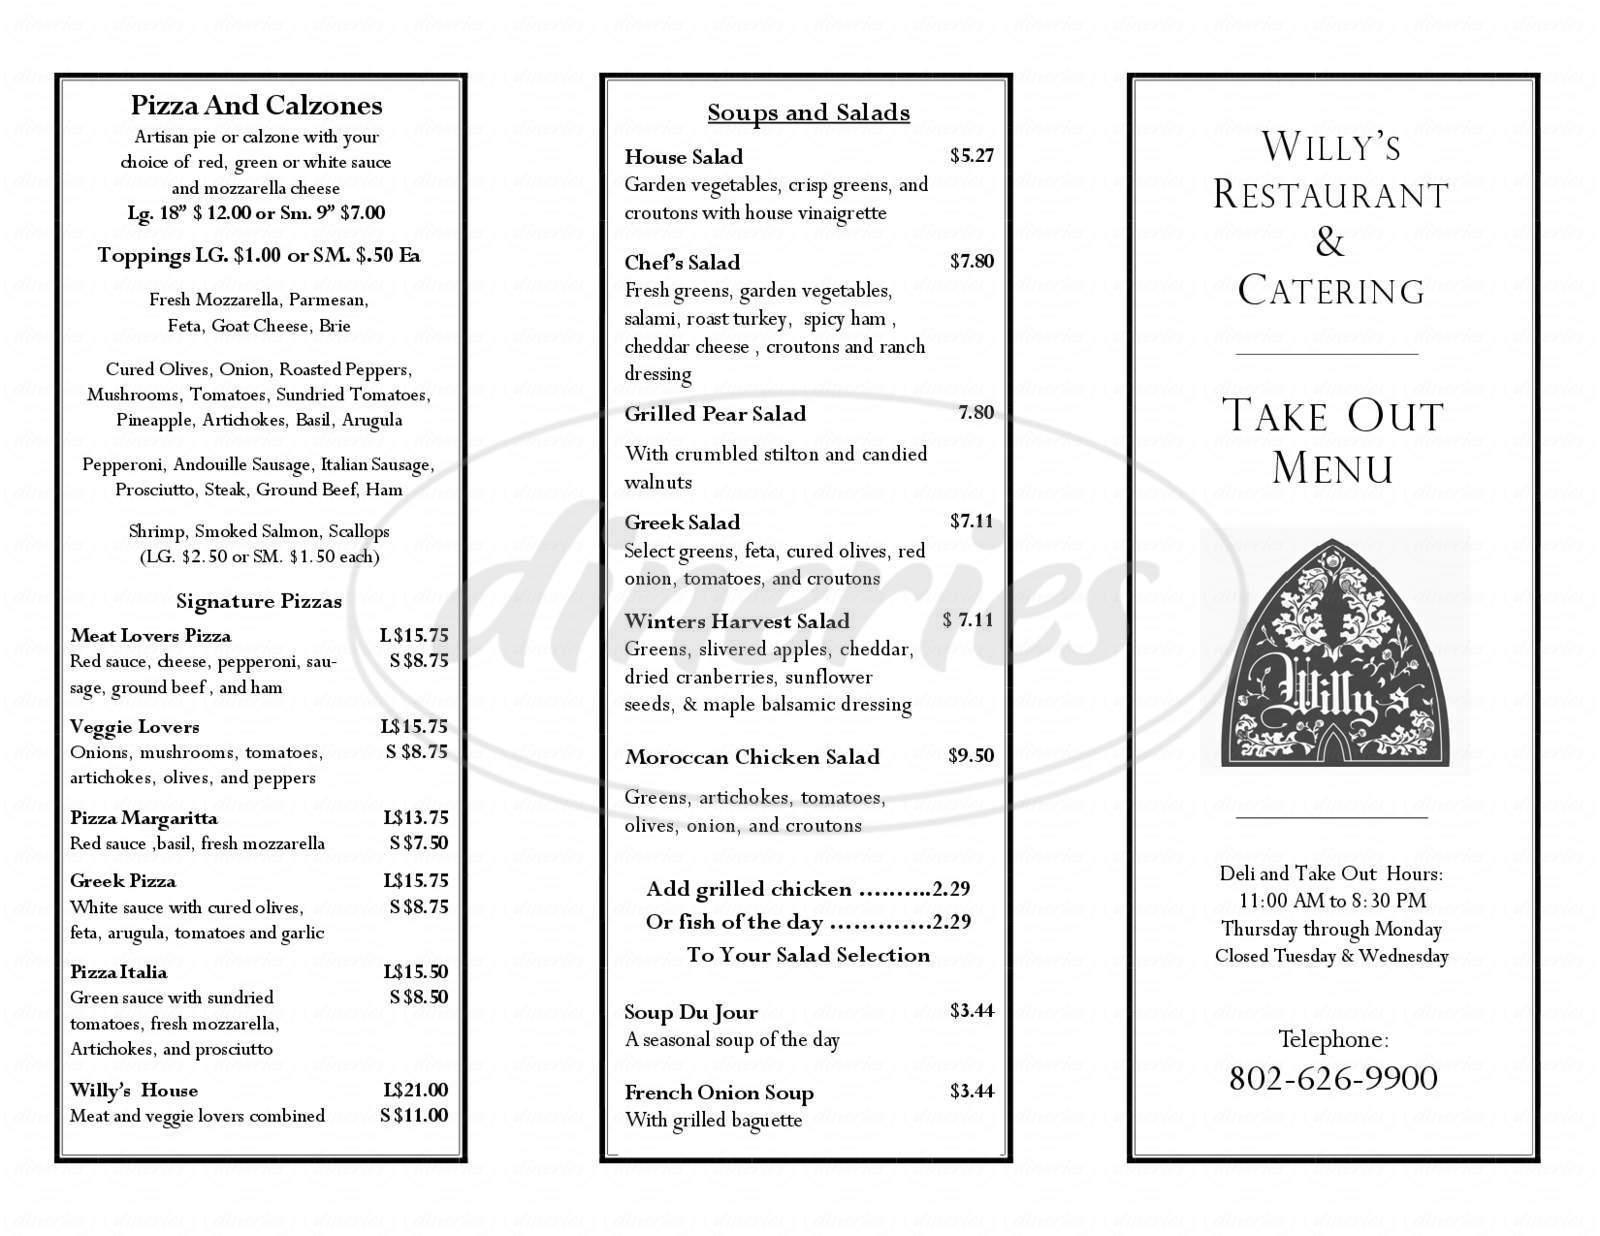 menu for Willy's Restaraunt & Catering